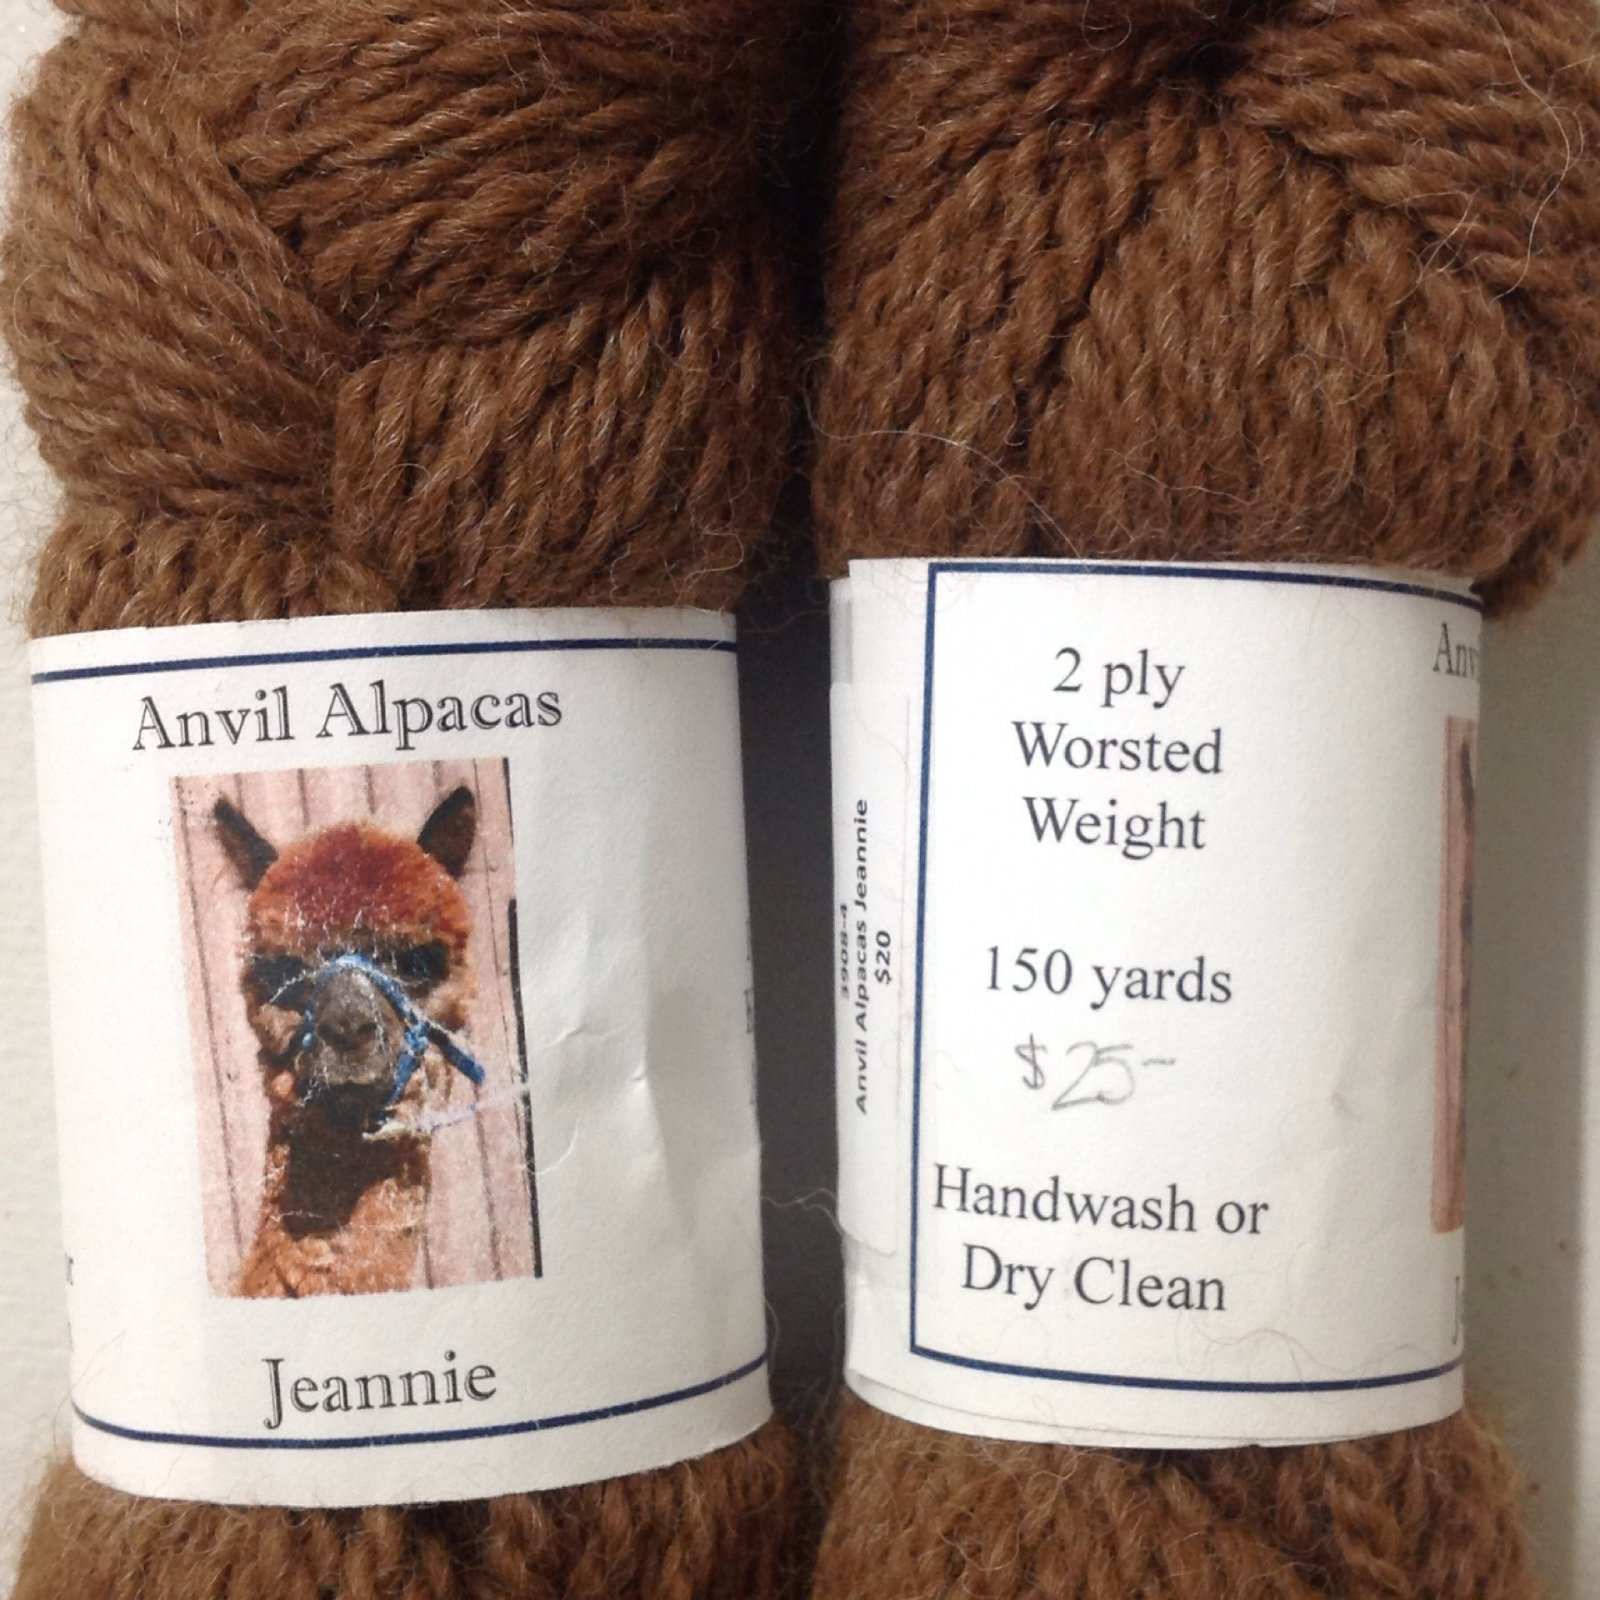 Jeannie (2 Ply Worsted)